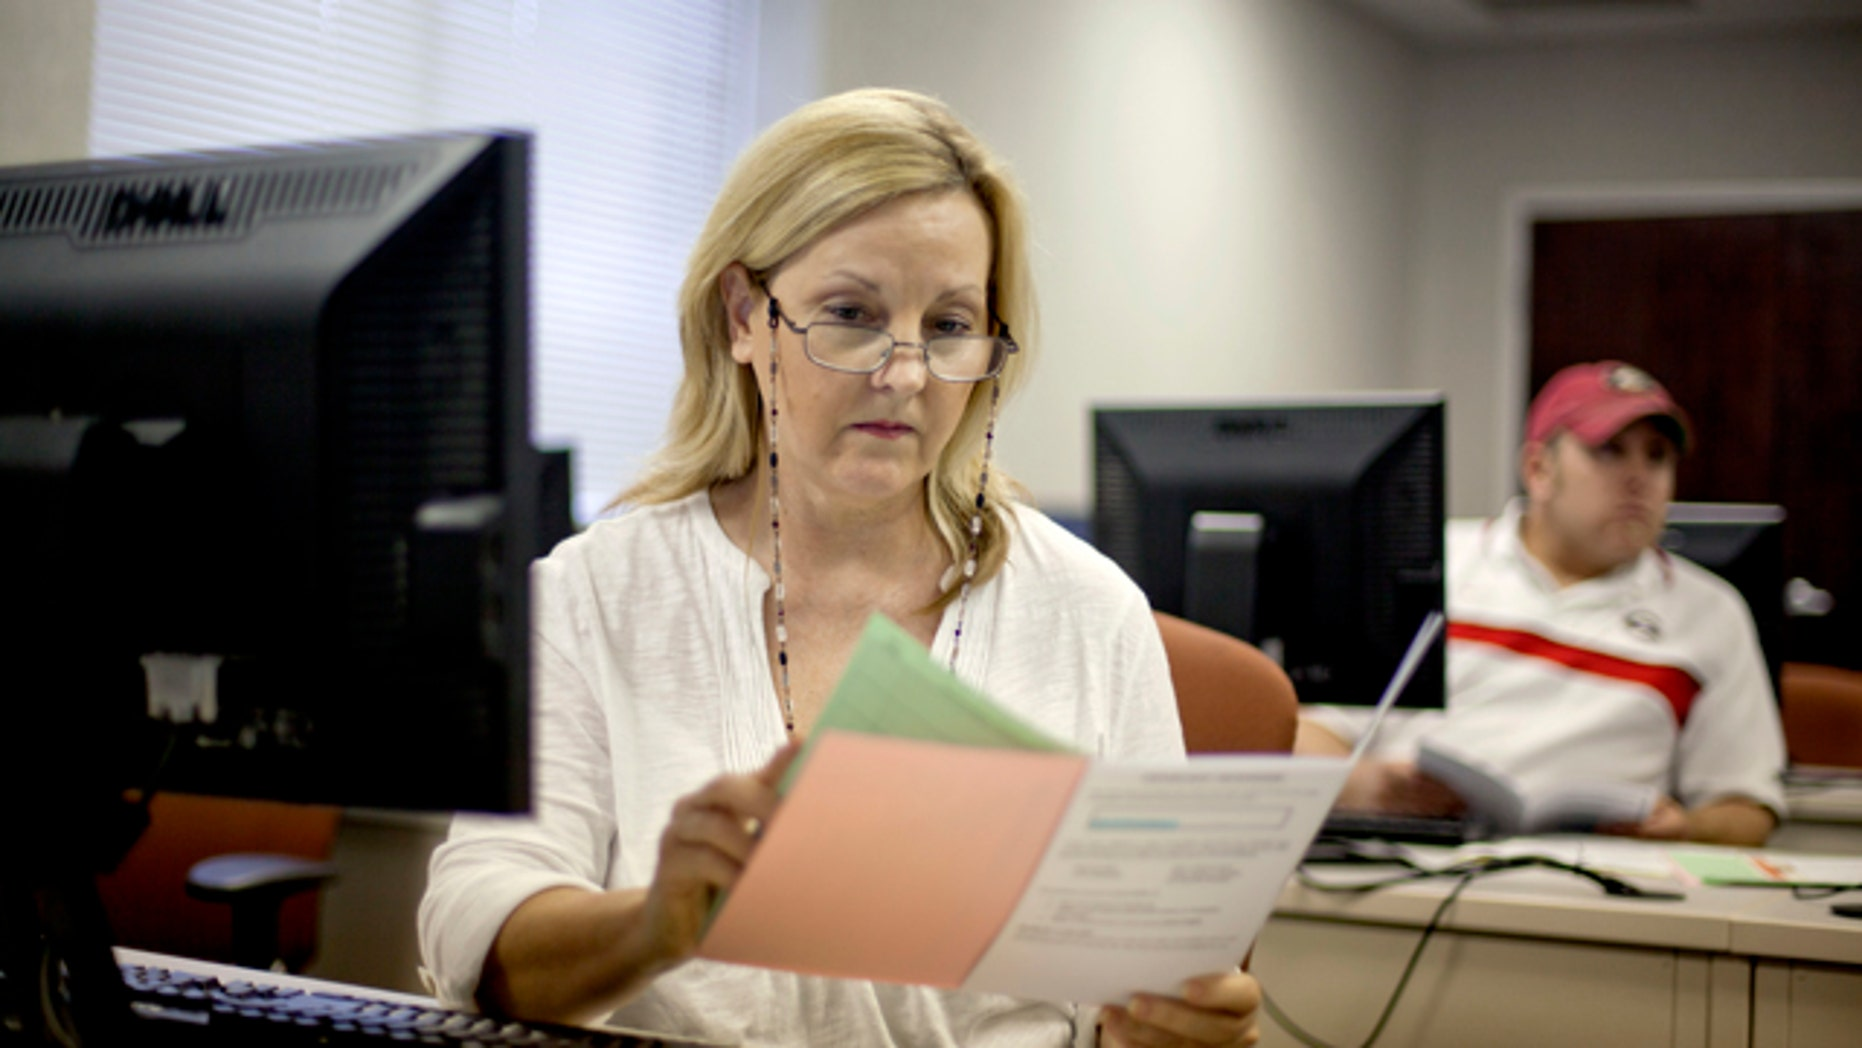 Aug. 22, 2012: Judy Smith, of Dalton, Ga., looks over paperwork as she files for unemployment for the first time since being laid off from a catering job at a convention center in Dalton, Ga. (AP)